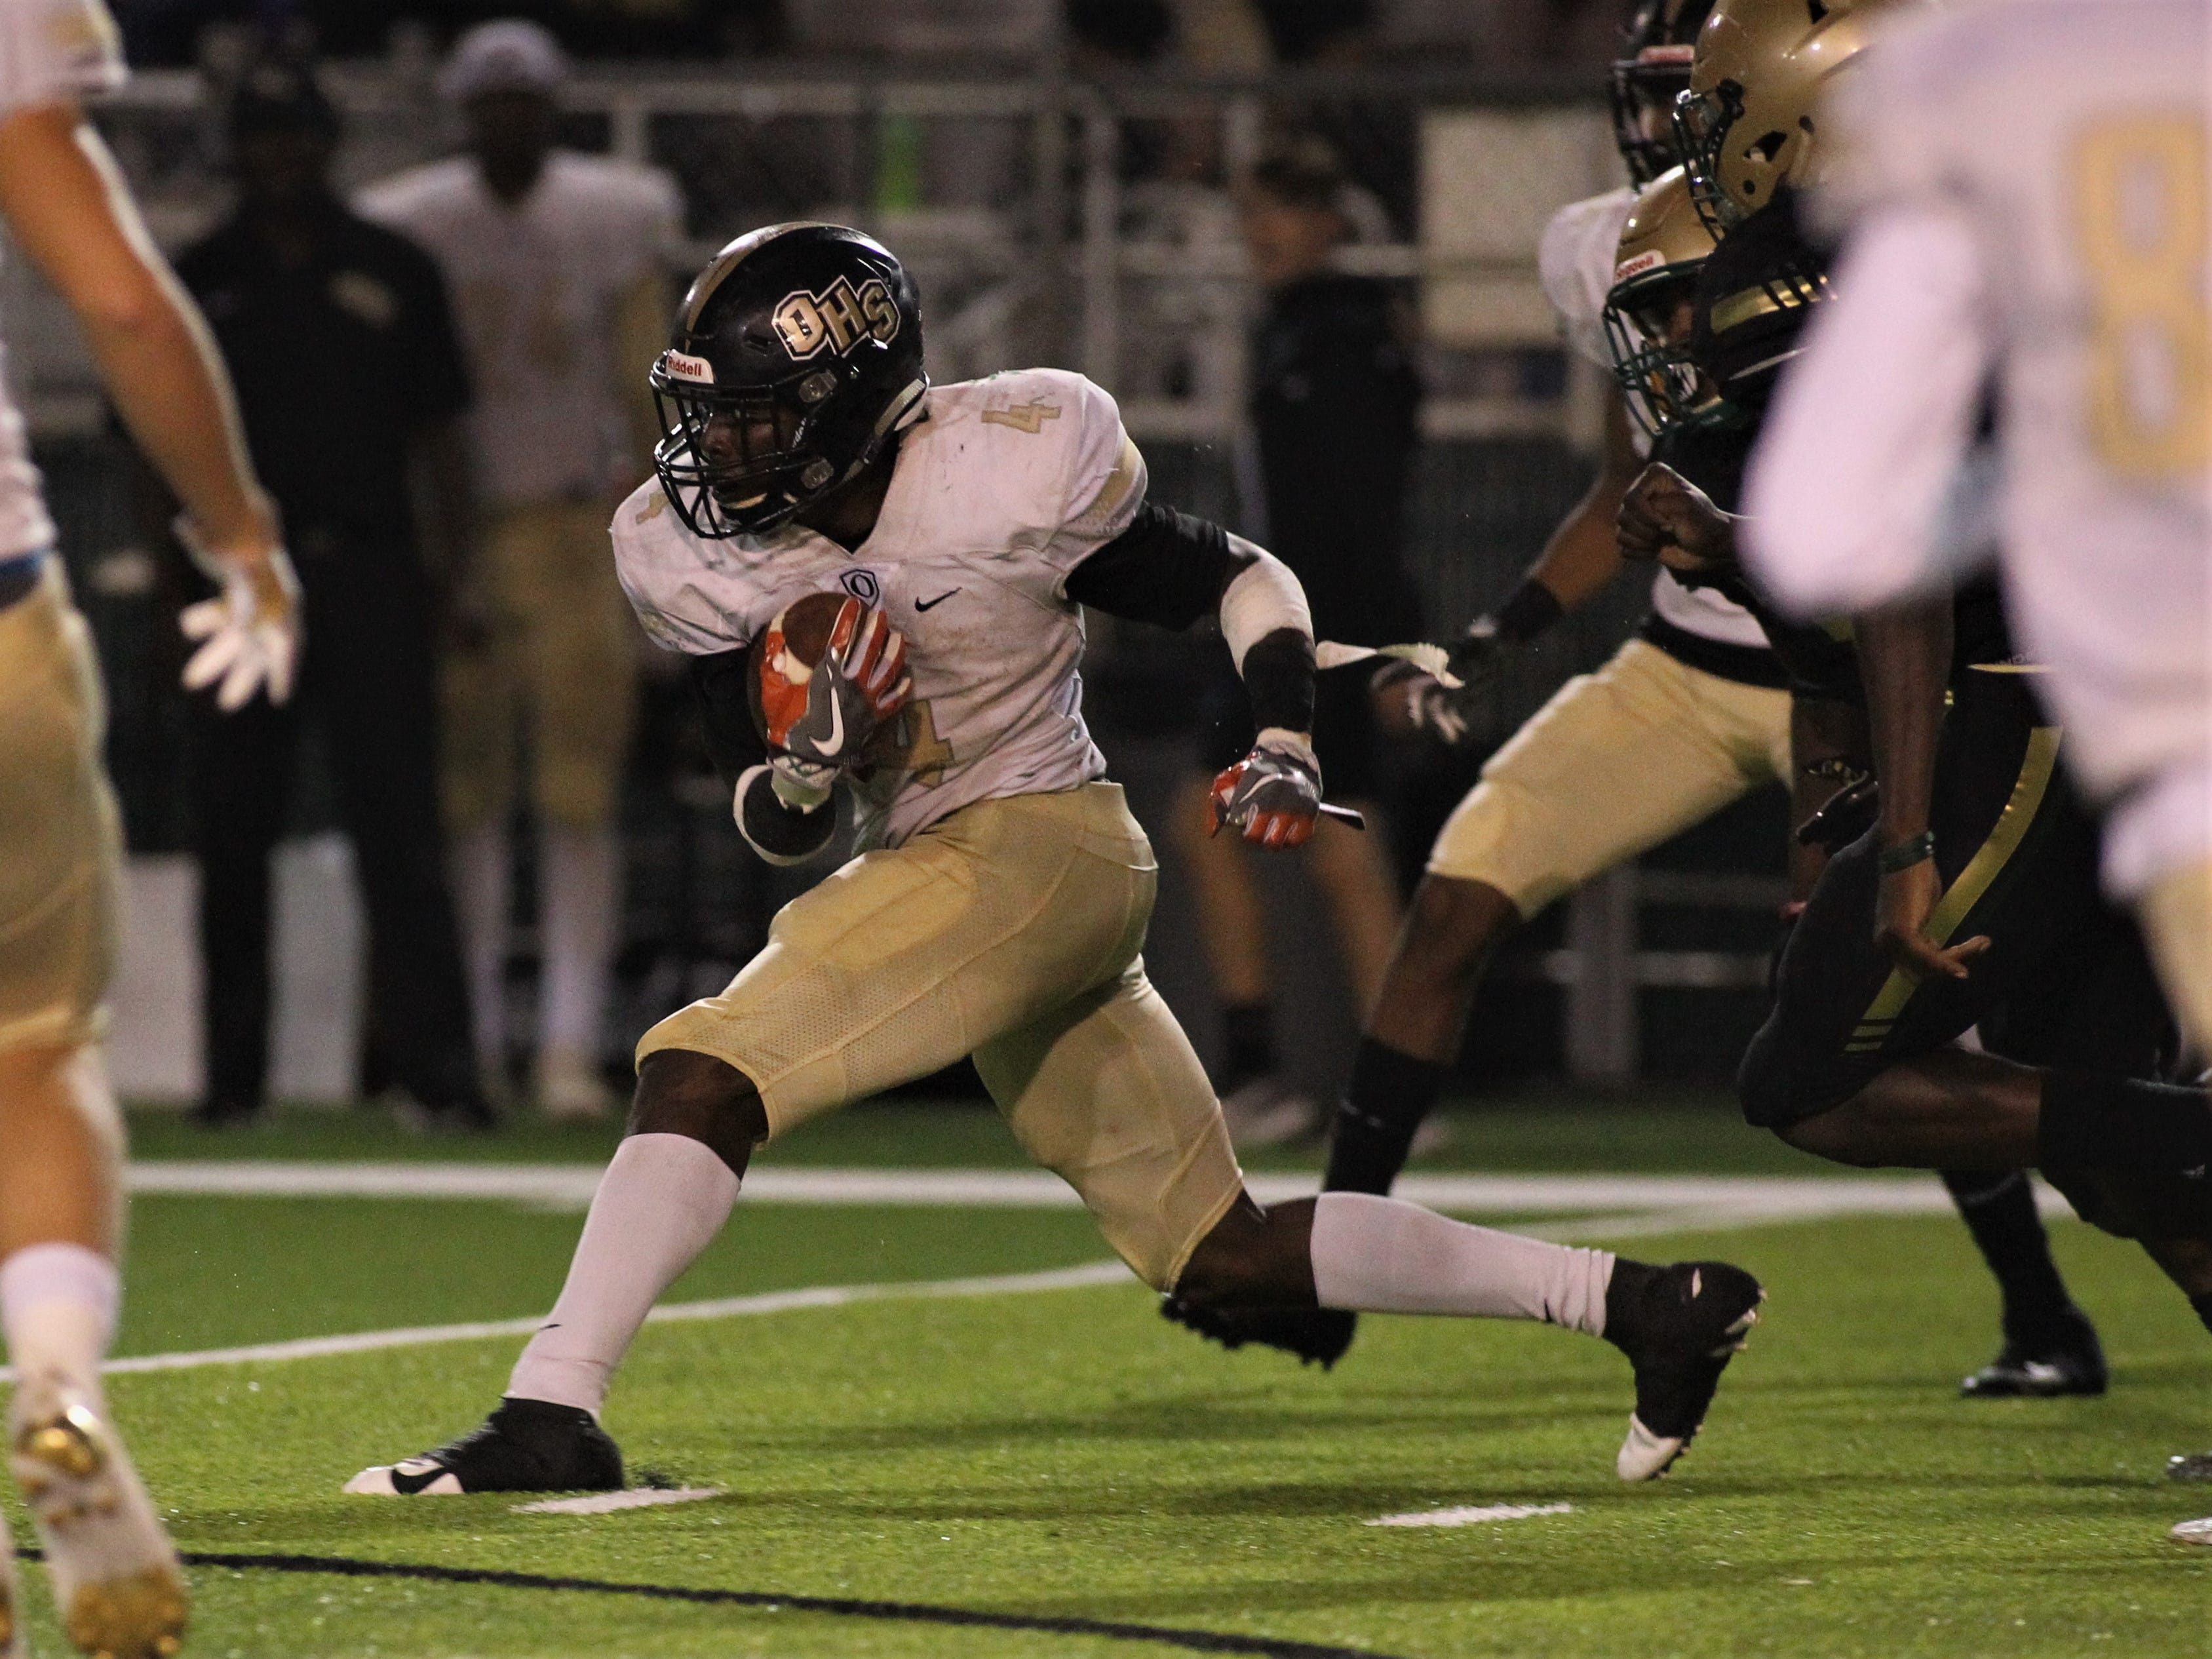 Oakleaf running back Keshawn King runs for yardage as Lincoln beat Oakleaf 38-31 in three overtime periods during a Region 1-7A quarterfinal Thursday night at Gene Cox Stadium.